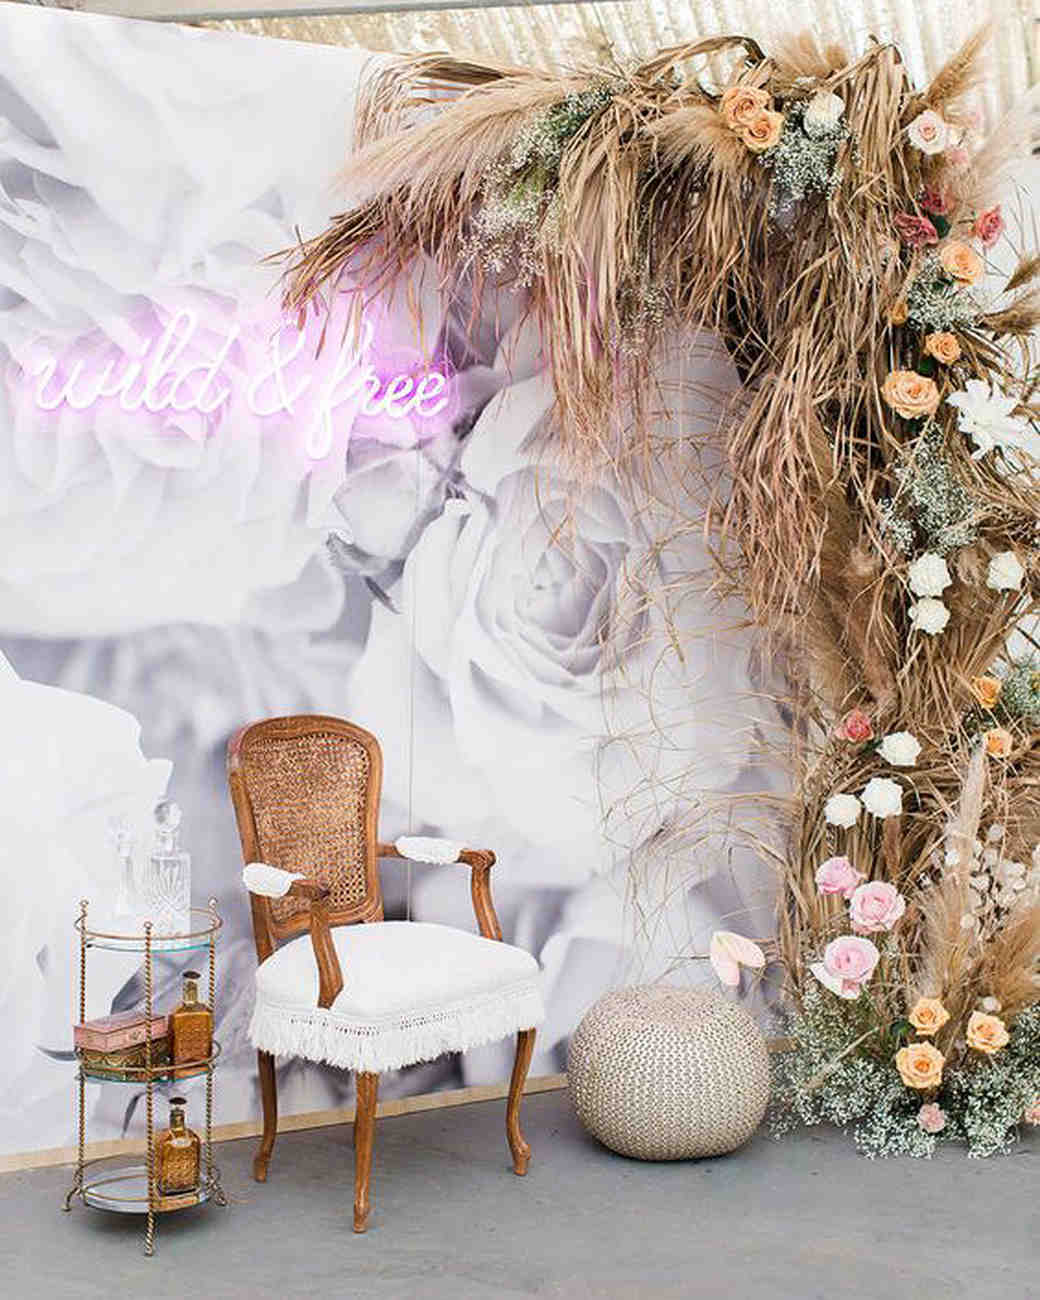 wild and free neon sign in bohemian lounge area